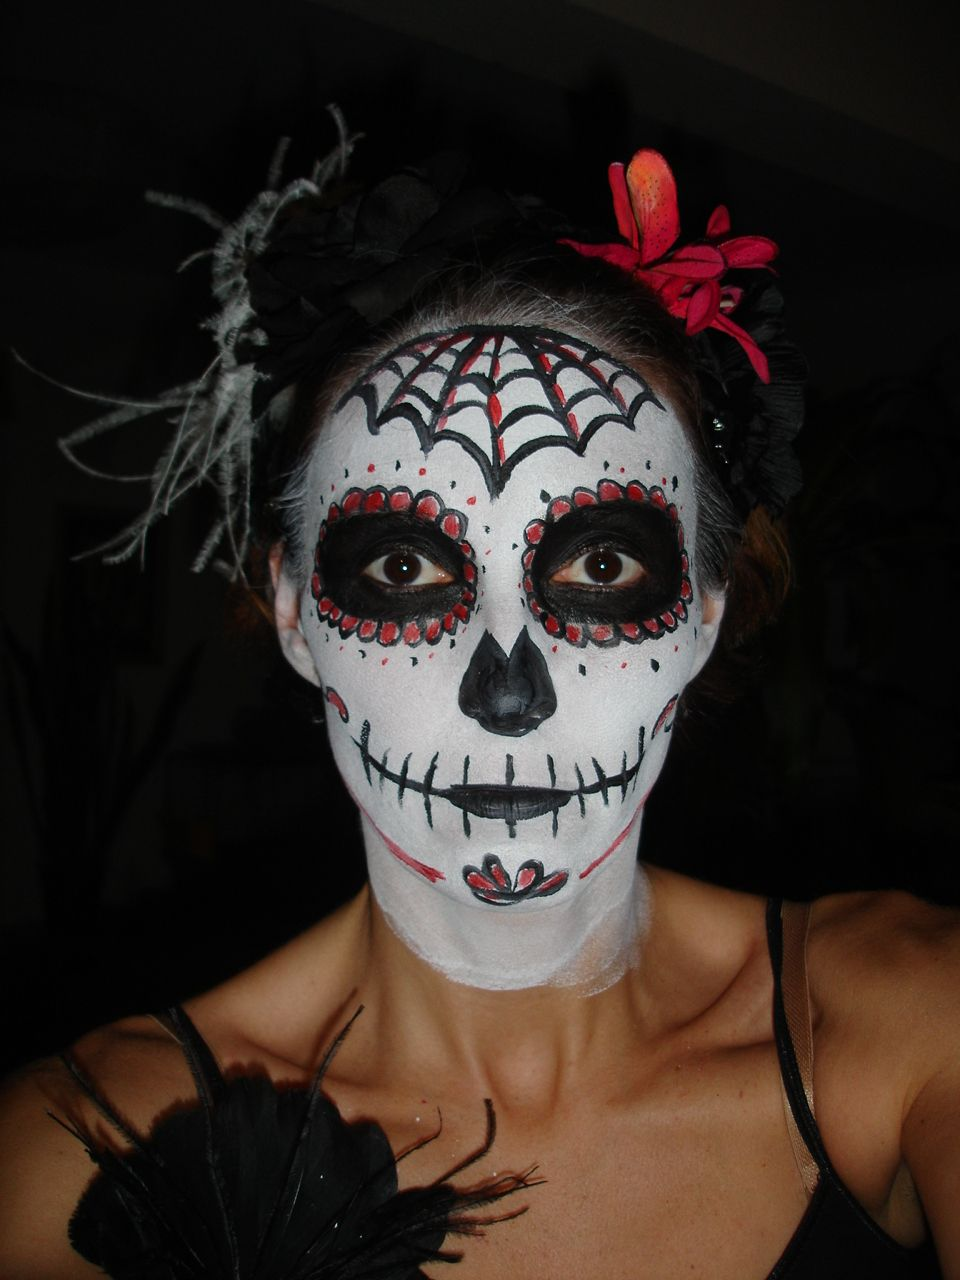 Maquillage halloween cr ne mexicain maquillage mexicain pinterest cr ne mexicain - Maquillage halloween mexicain ...